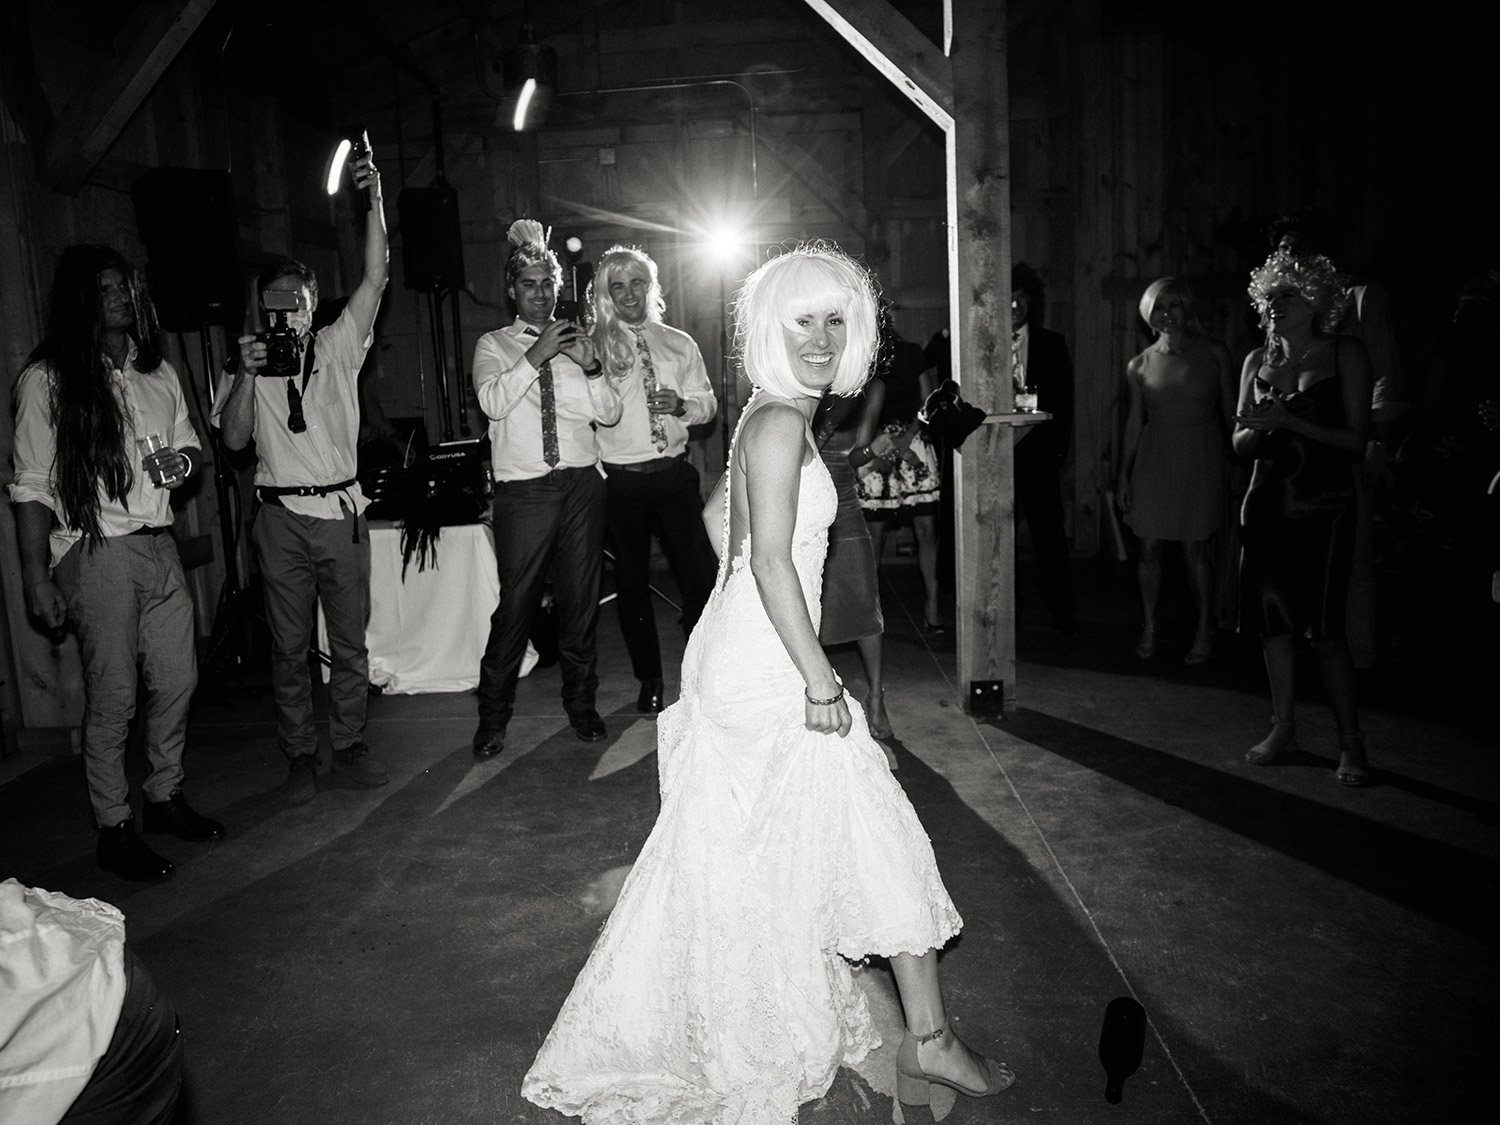 bride on dance floor in wig